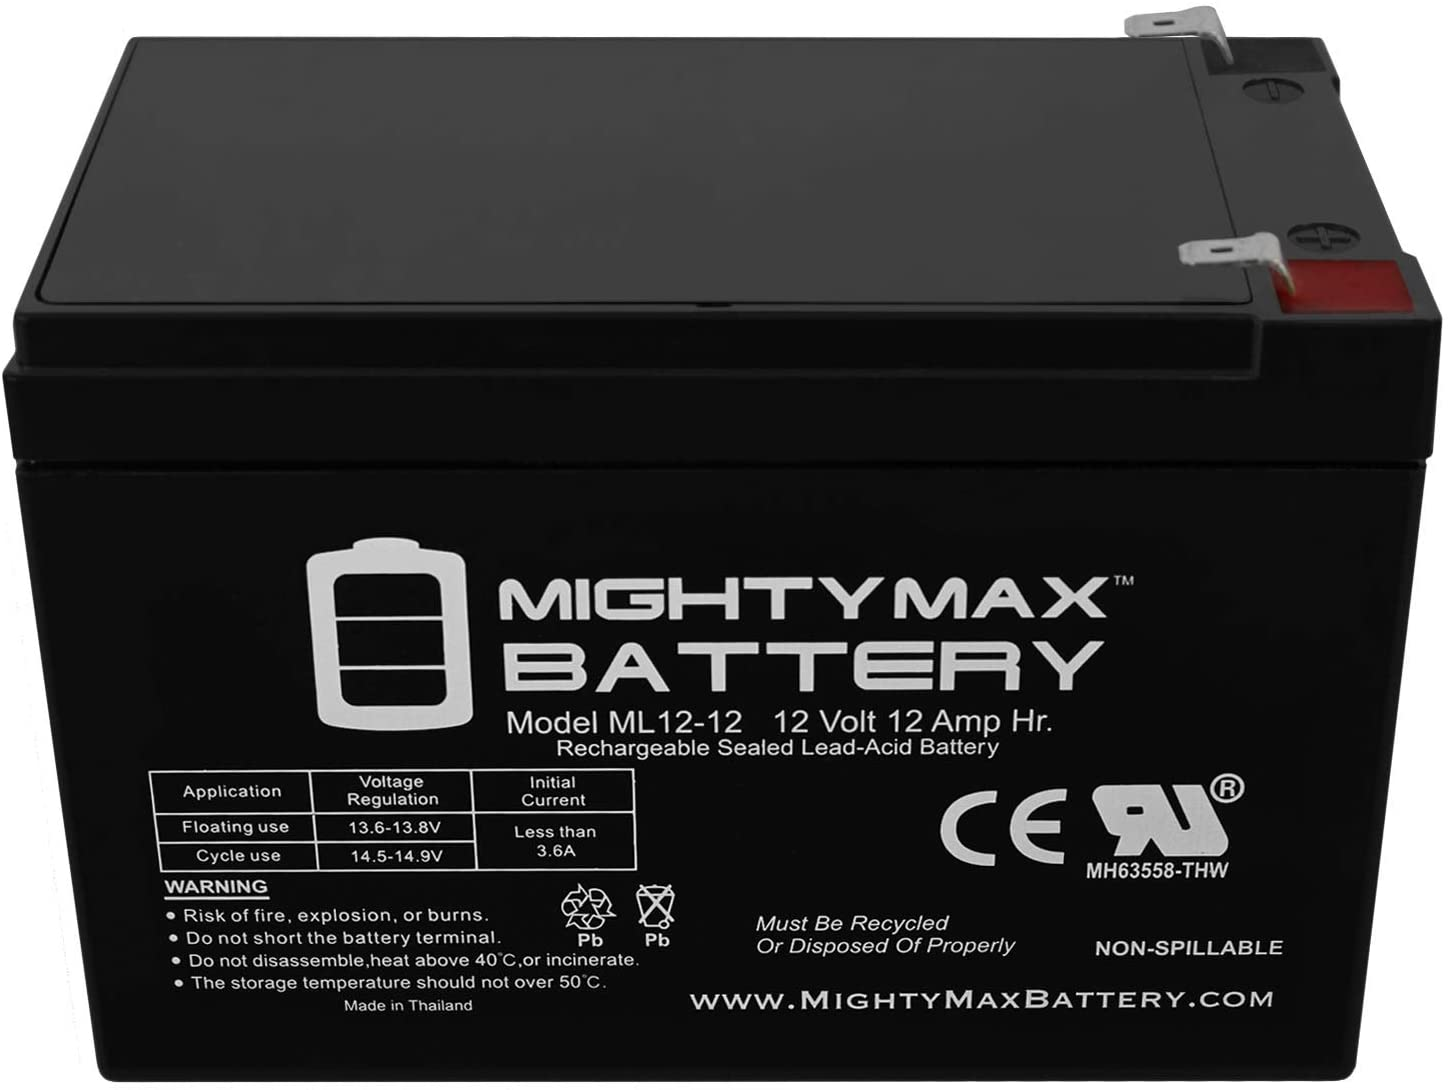 12V 12AH F2 UPS Battery for Minuteman Pro 1000i 3 Pack Brand Product Mighty Max Battery ML12-12